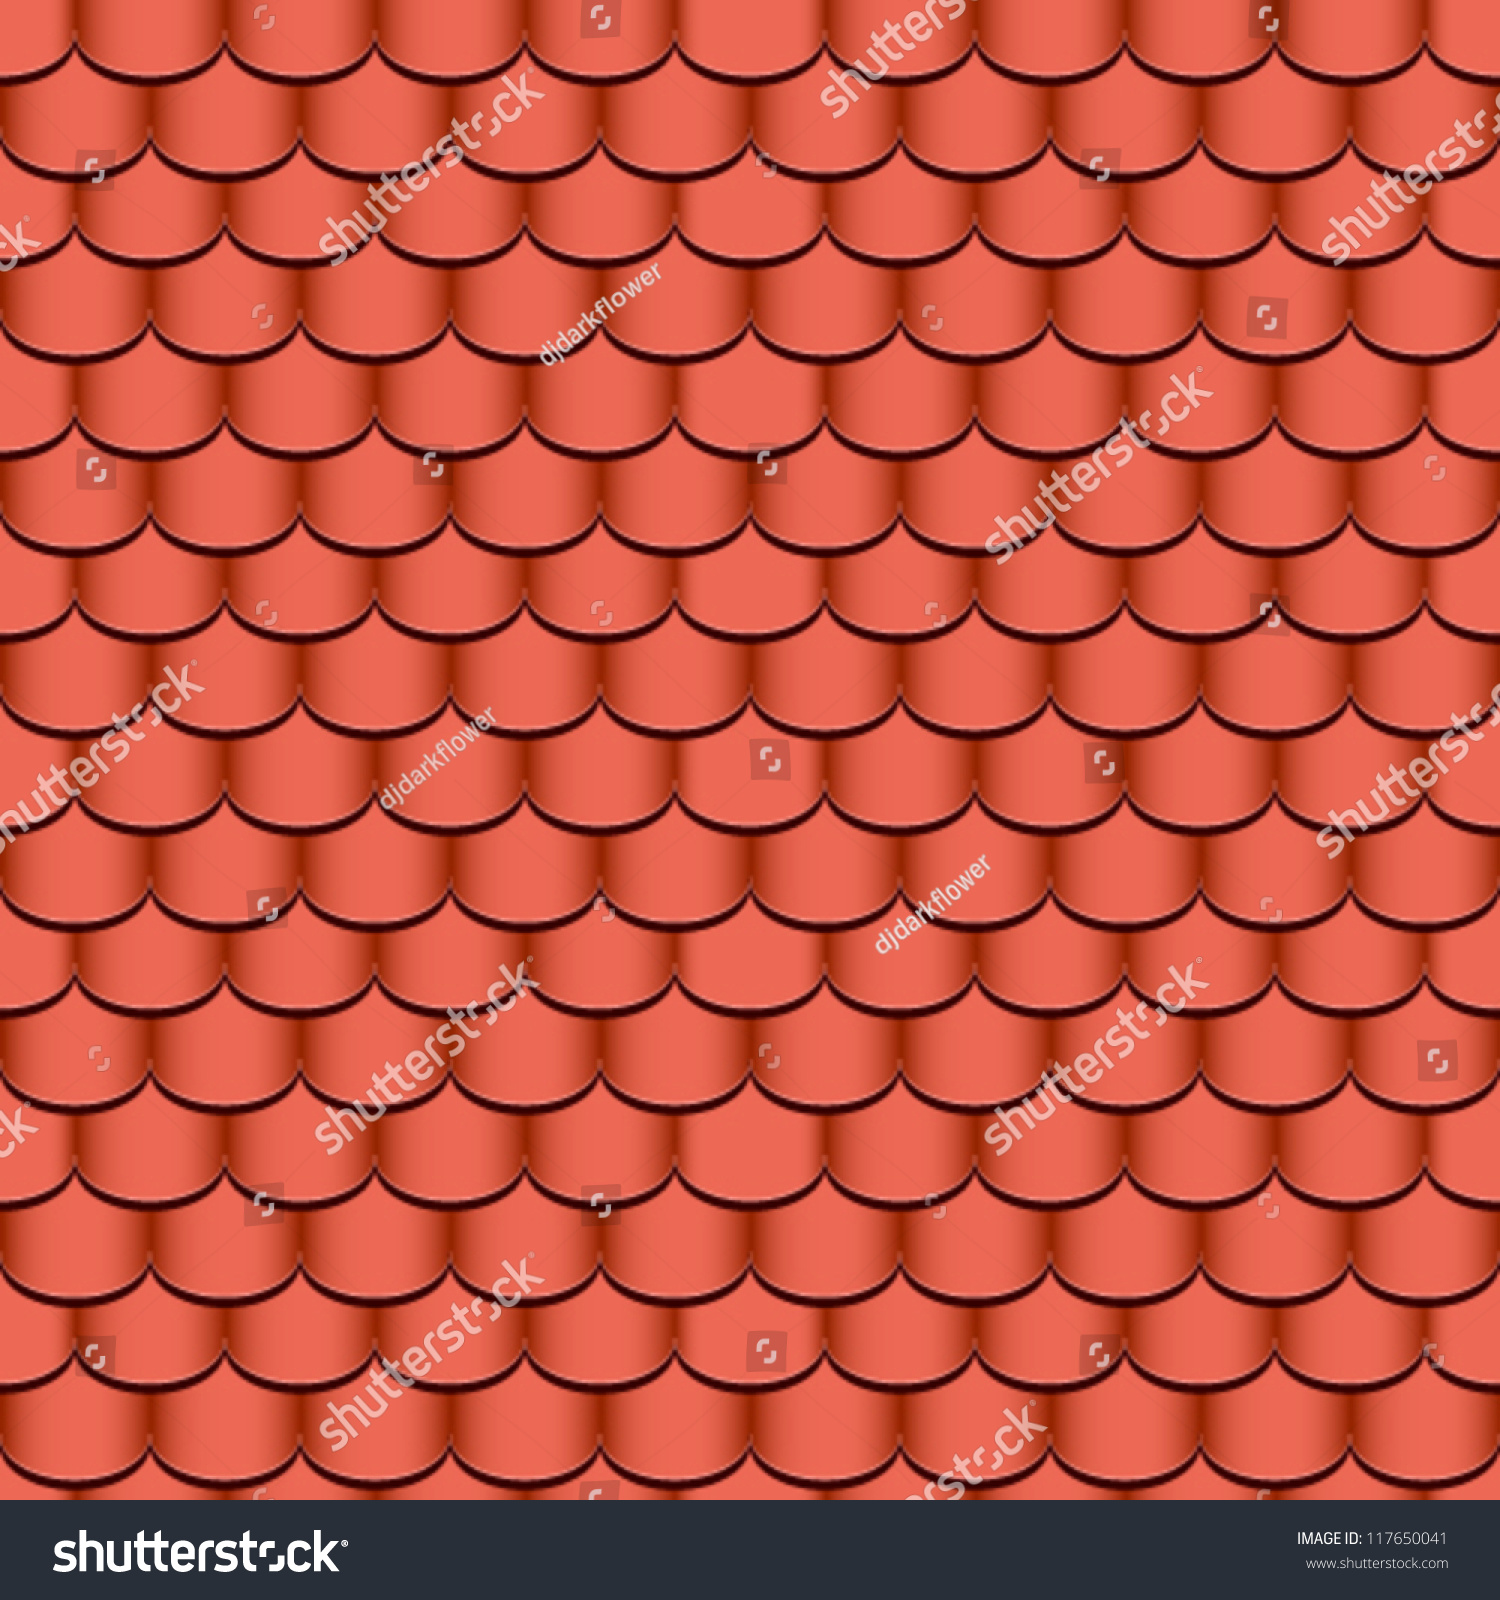 Clay Roof Tiles Seamless Background Vector Illustration